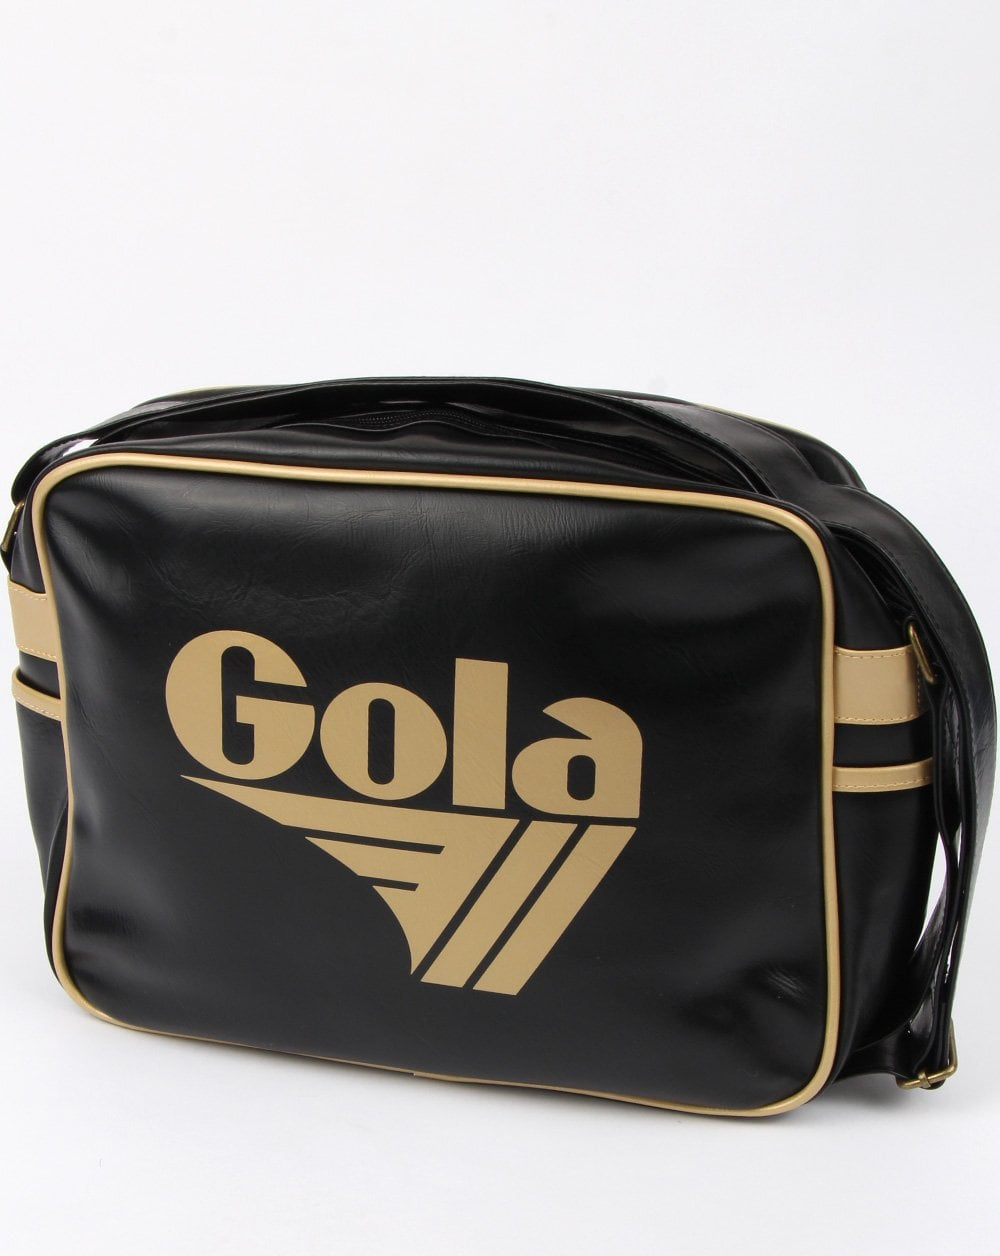 Gola Redord Shoulder Bag